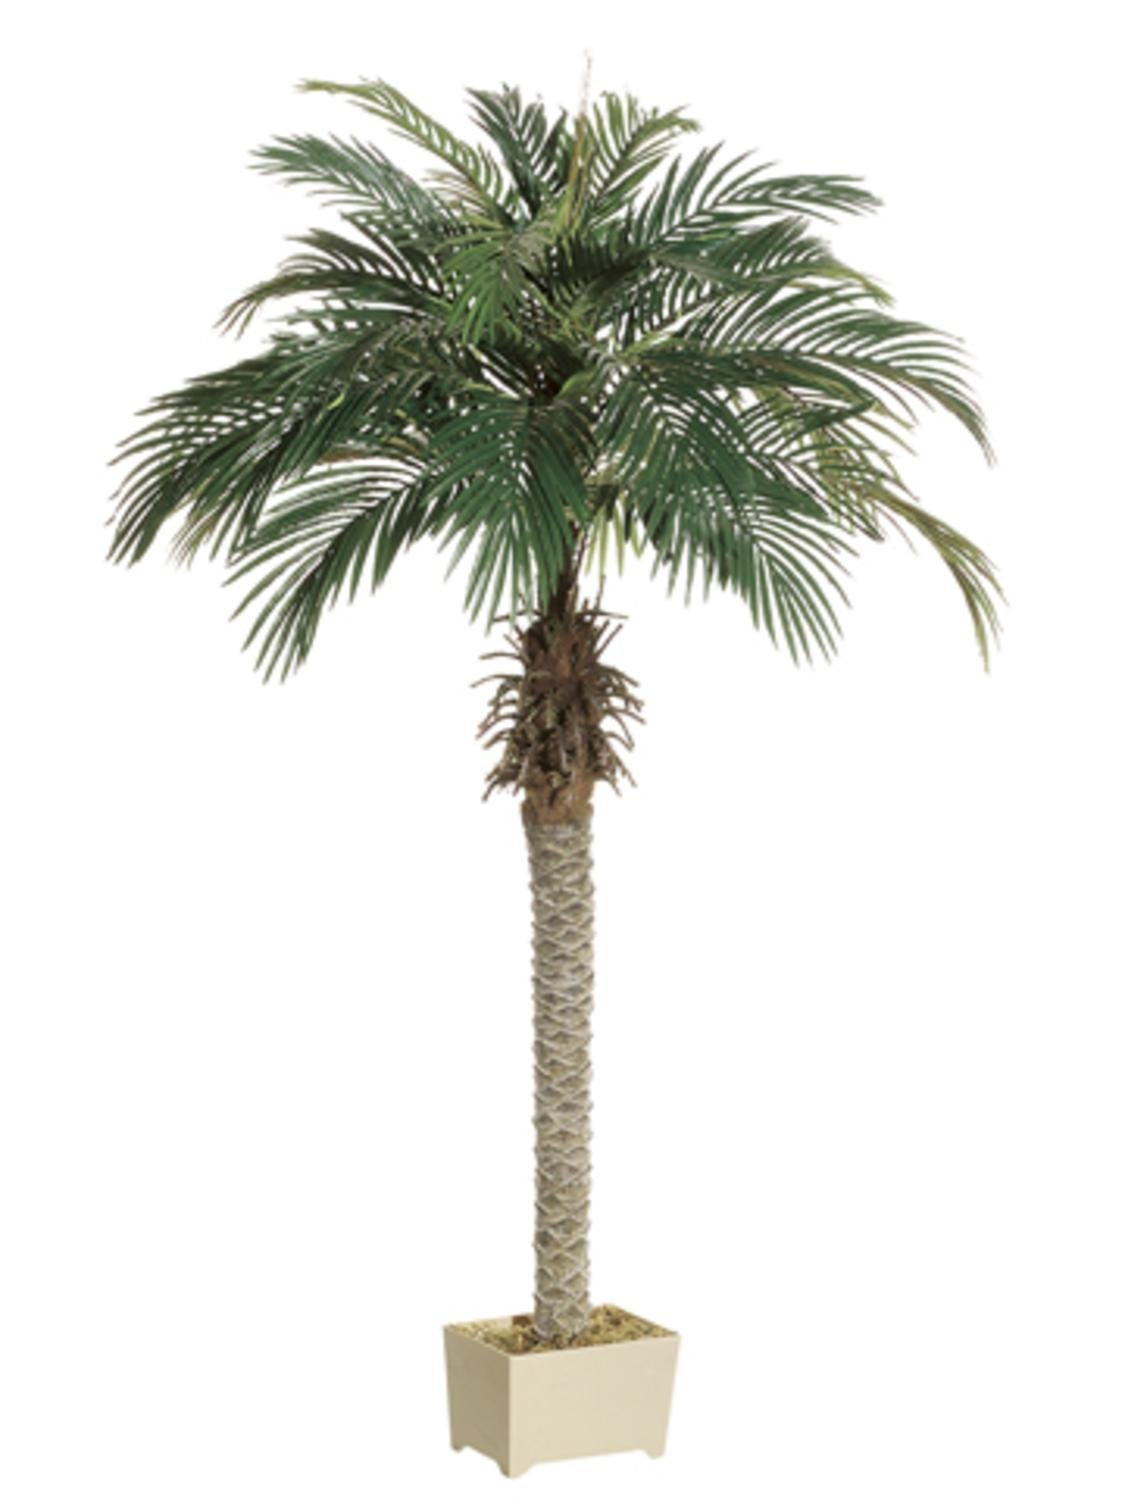 Pack of 2 Potted Artificial Silk Phoenix Palm Trees 6'